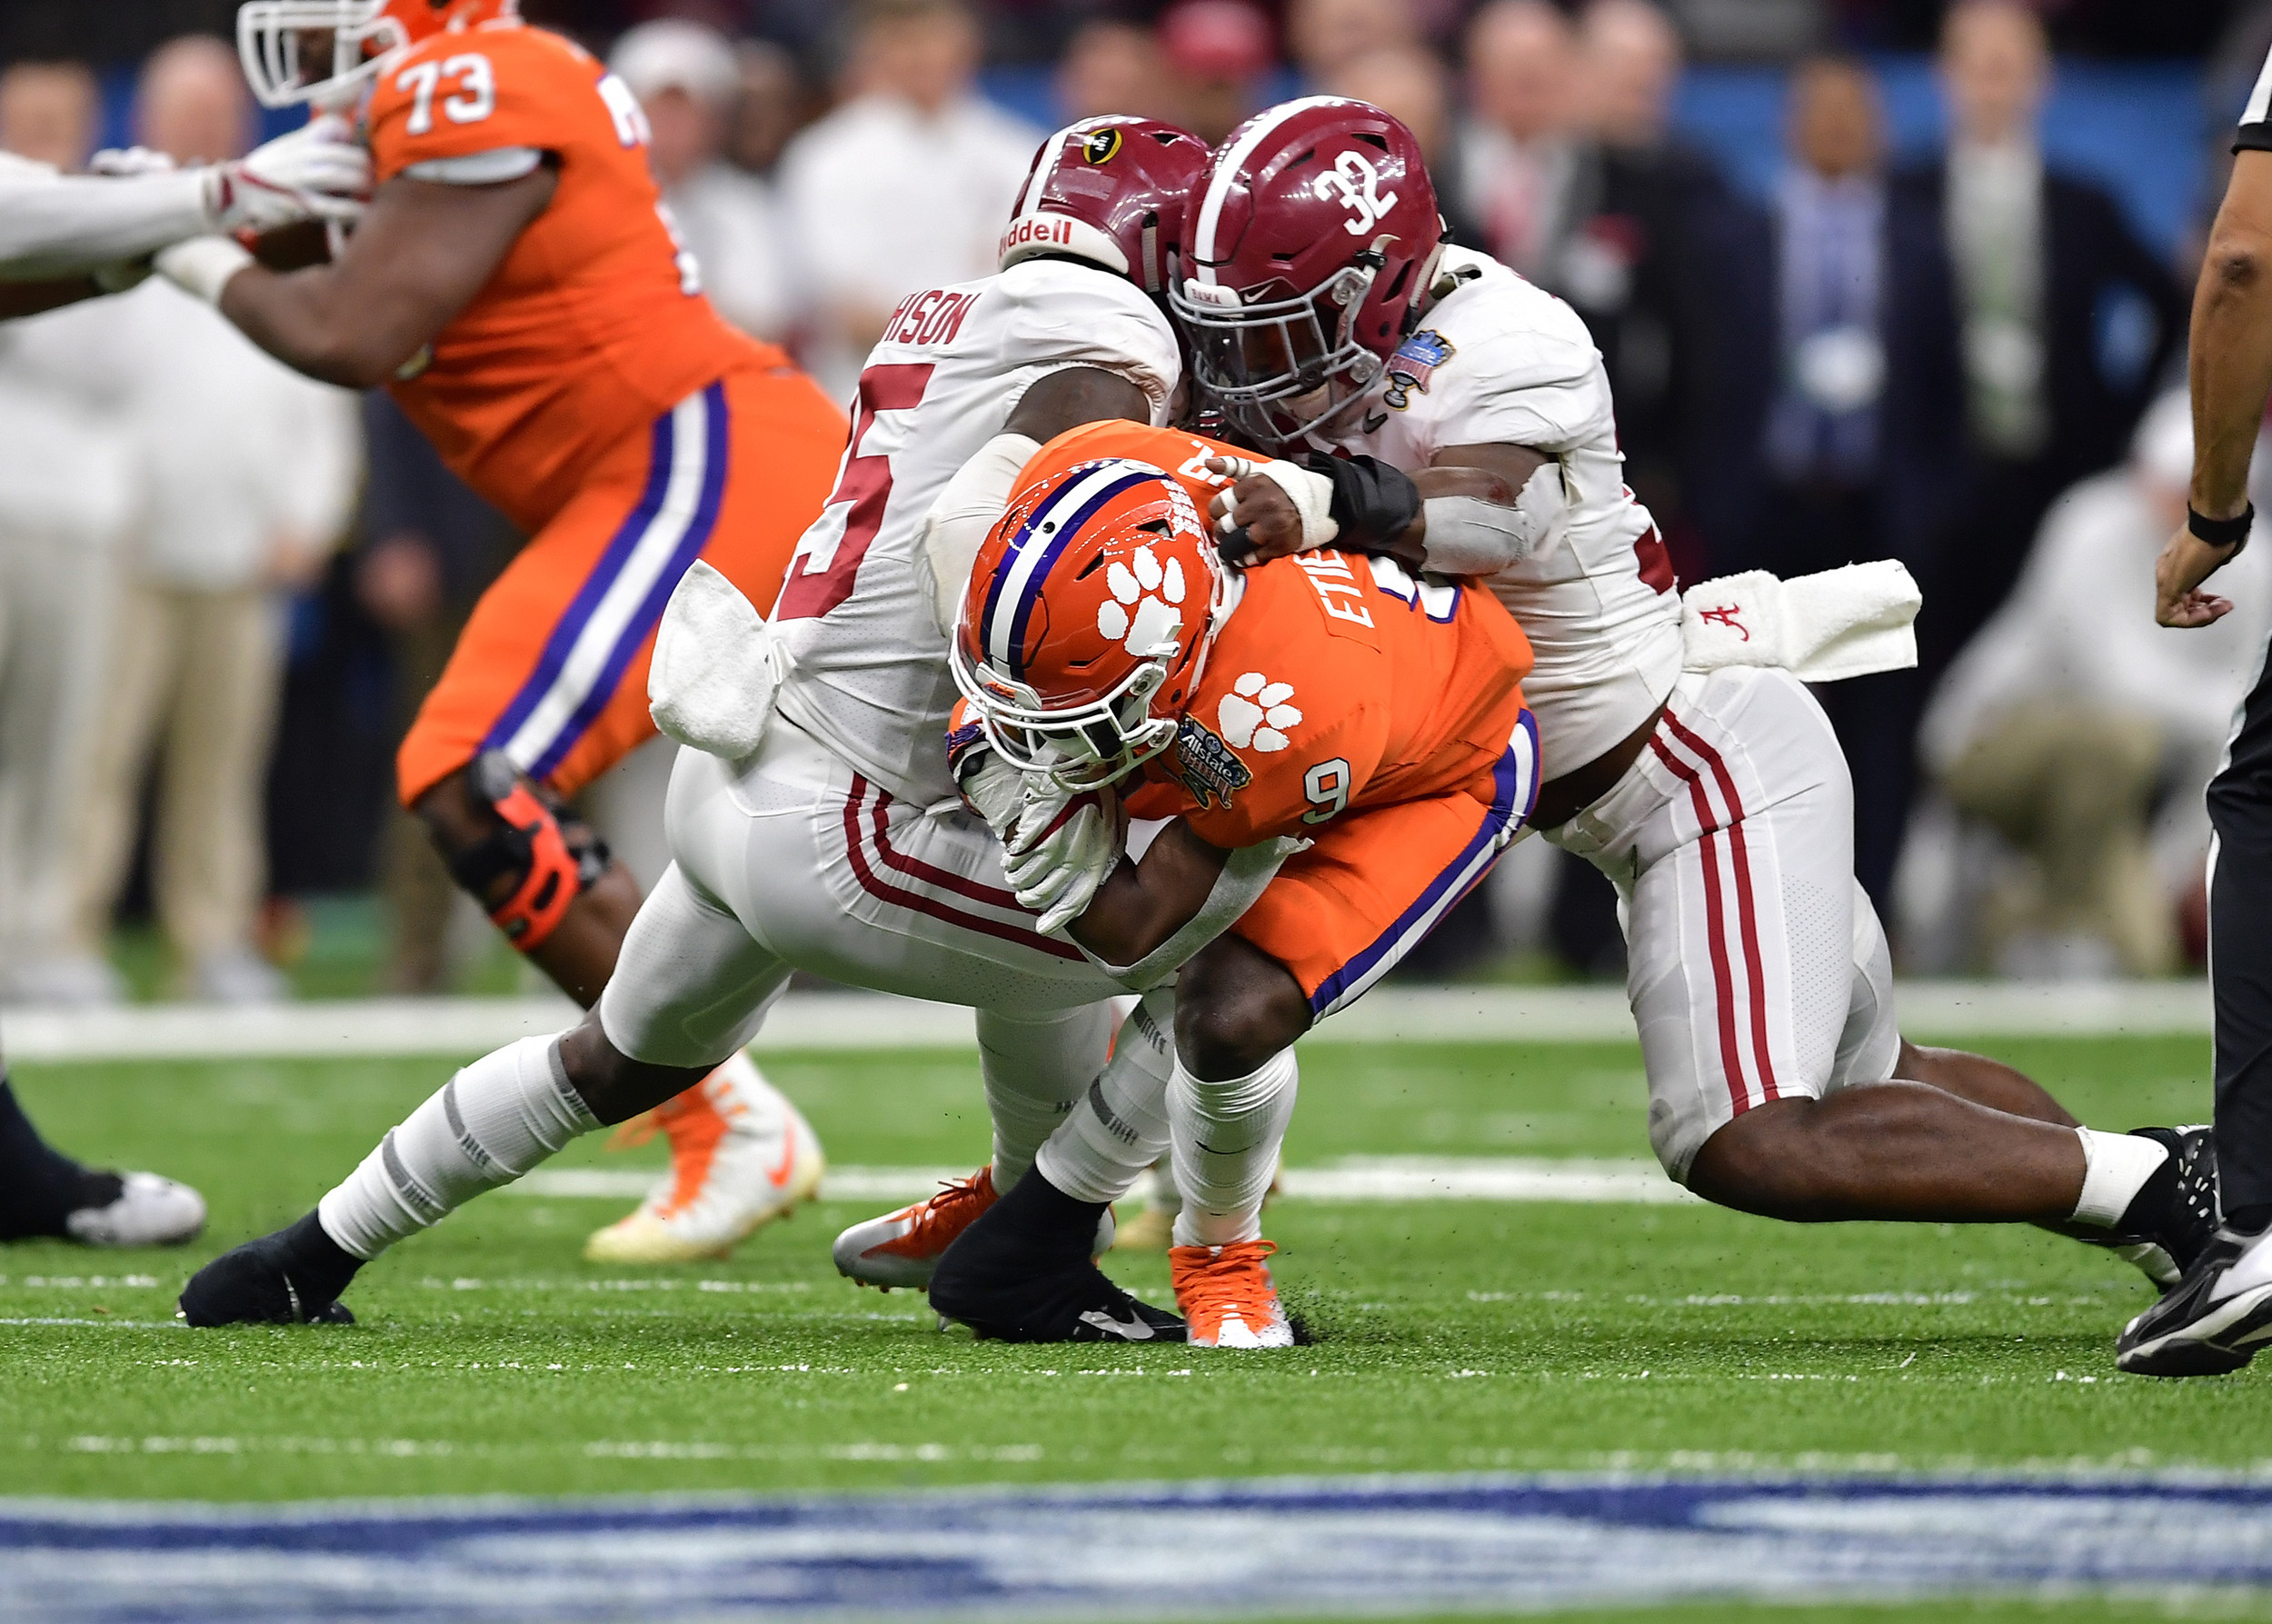 Clemson Tigers quarterback Kelly Bryant (2) is sacked in the second half of the 2018 AllState Sugar Bowl on Jan. 1, 2018, at the Mercedes-Benz SuperDome in New Orleans, La. Alabama won the game 24-6. (Photo by Lee Walls)